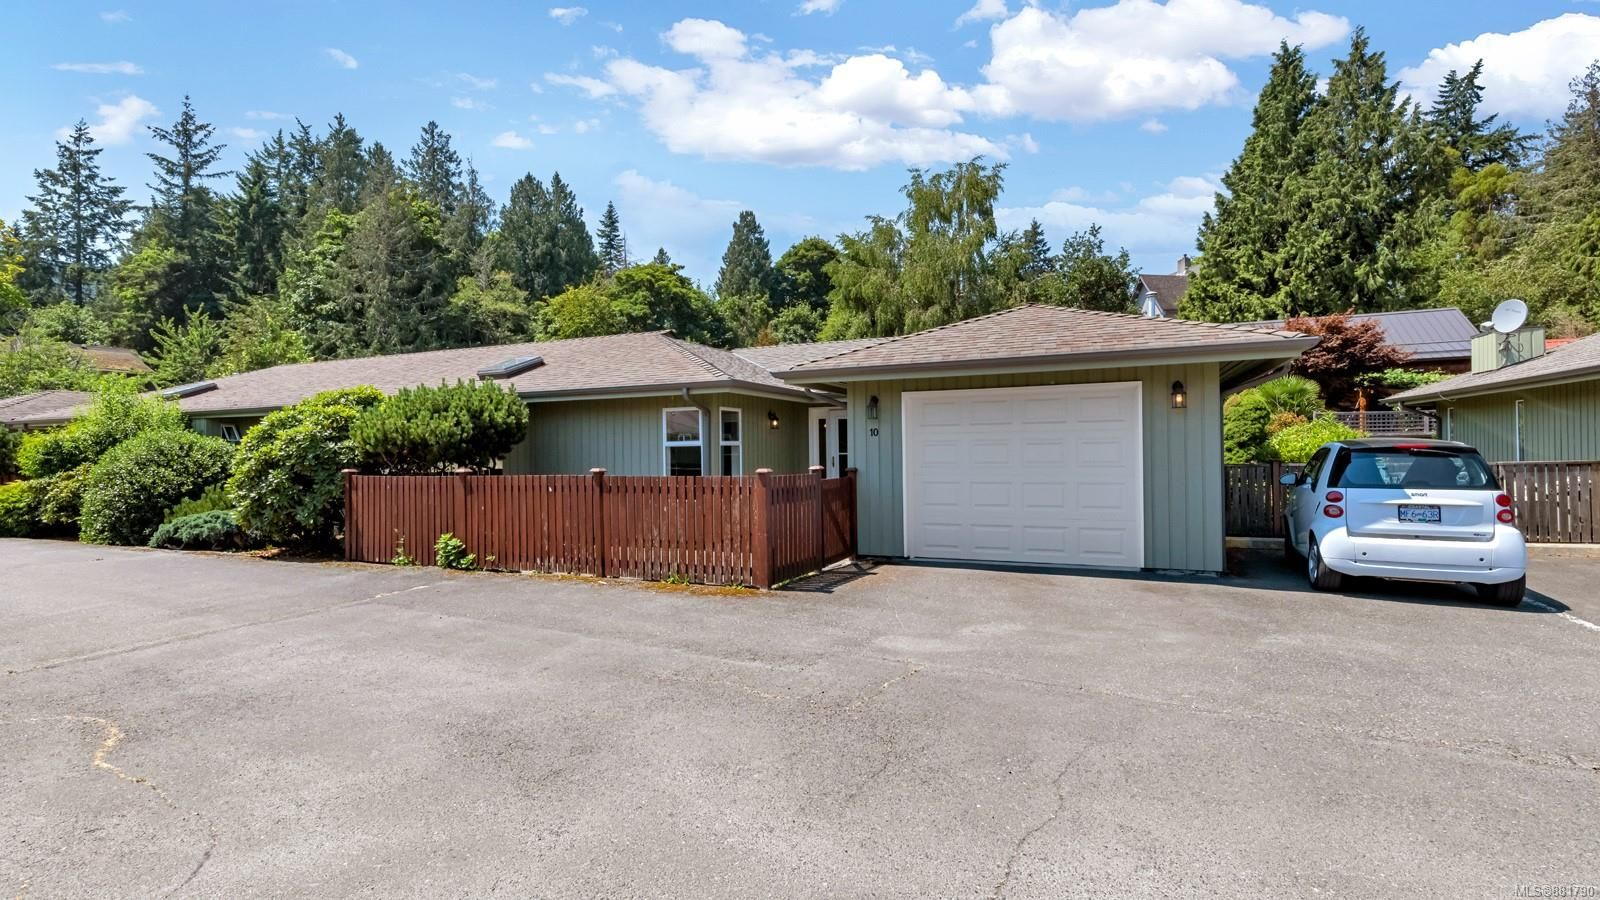 Main Photo: 10 235 Park Dr in : GI Salt Spring Row/Townhouse for sale (Gulf Islands)  : MLS®# 881790